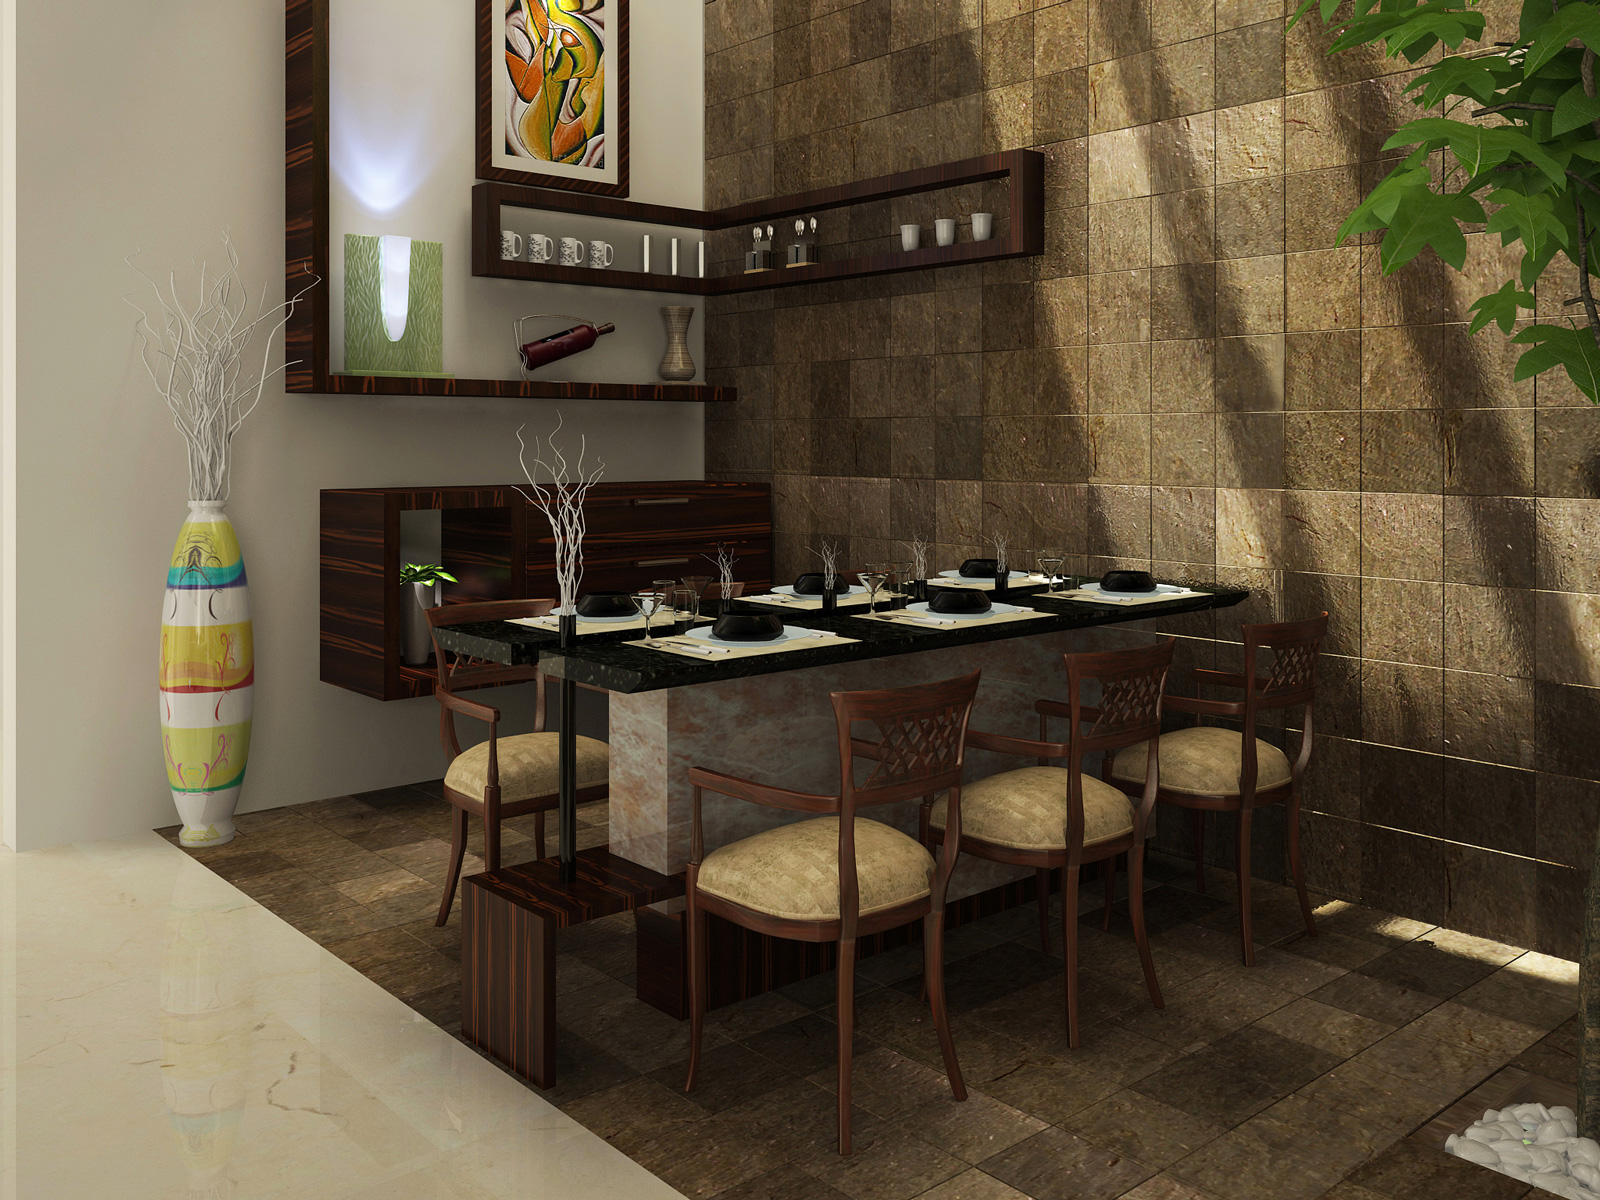 Kerala dining room design style photos home interior in india for Hall to dining designs